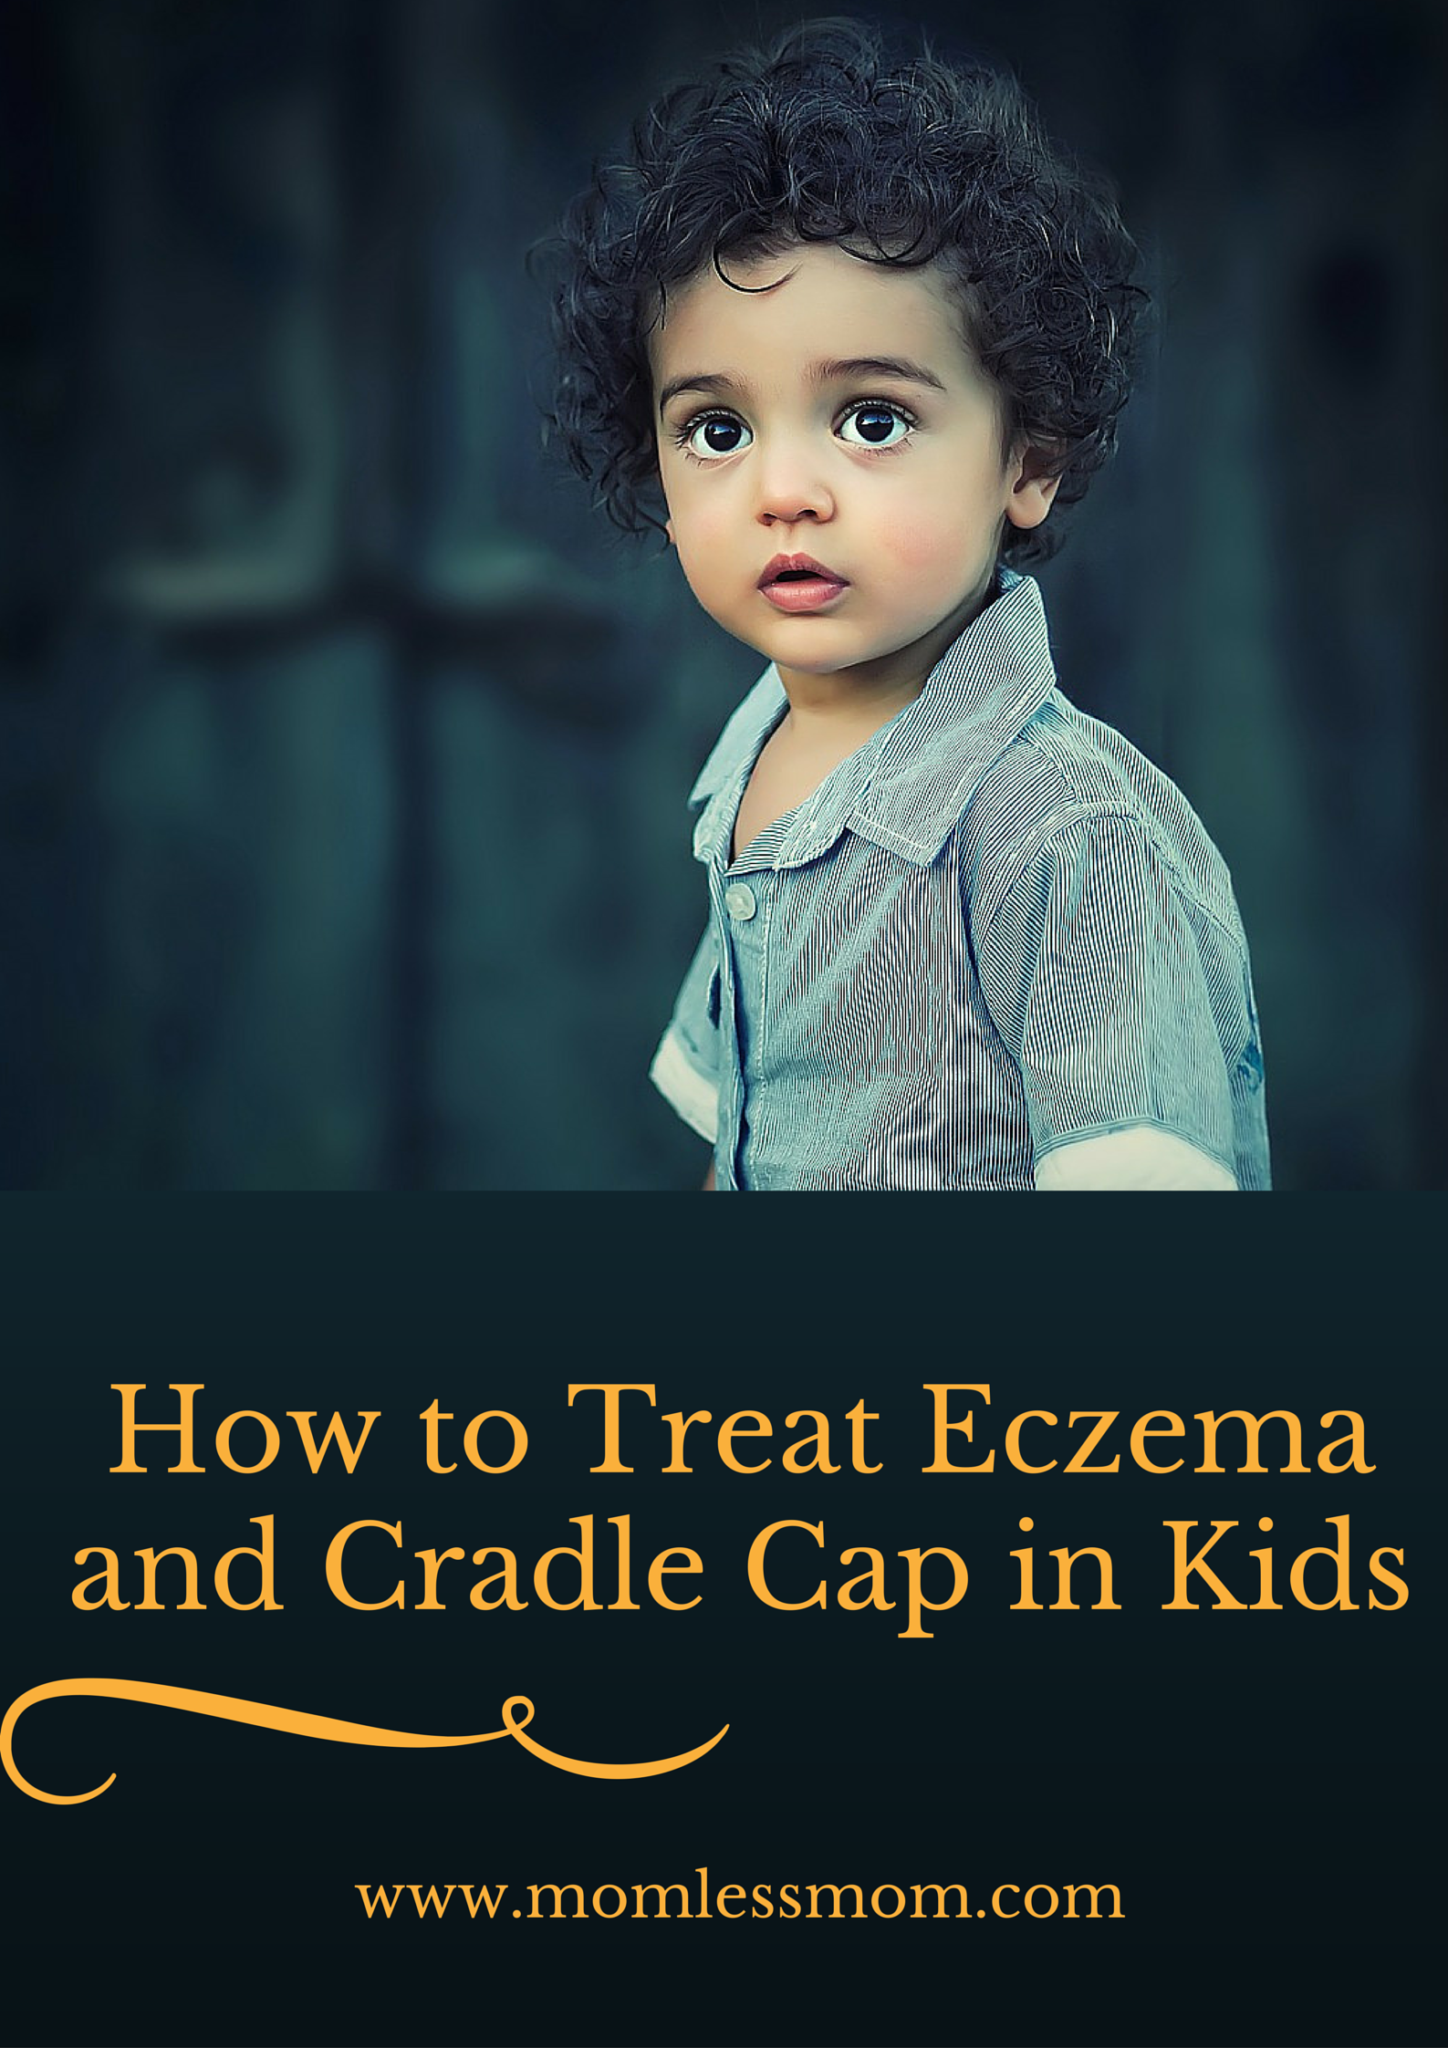 How to Treat Eczema and Cradle Cap in Kids